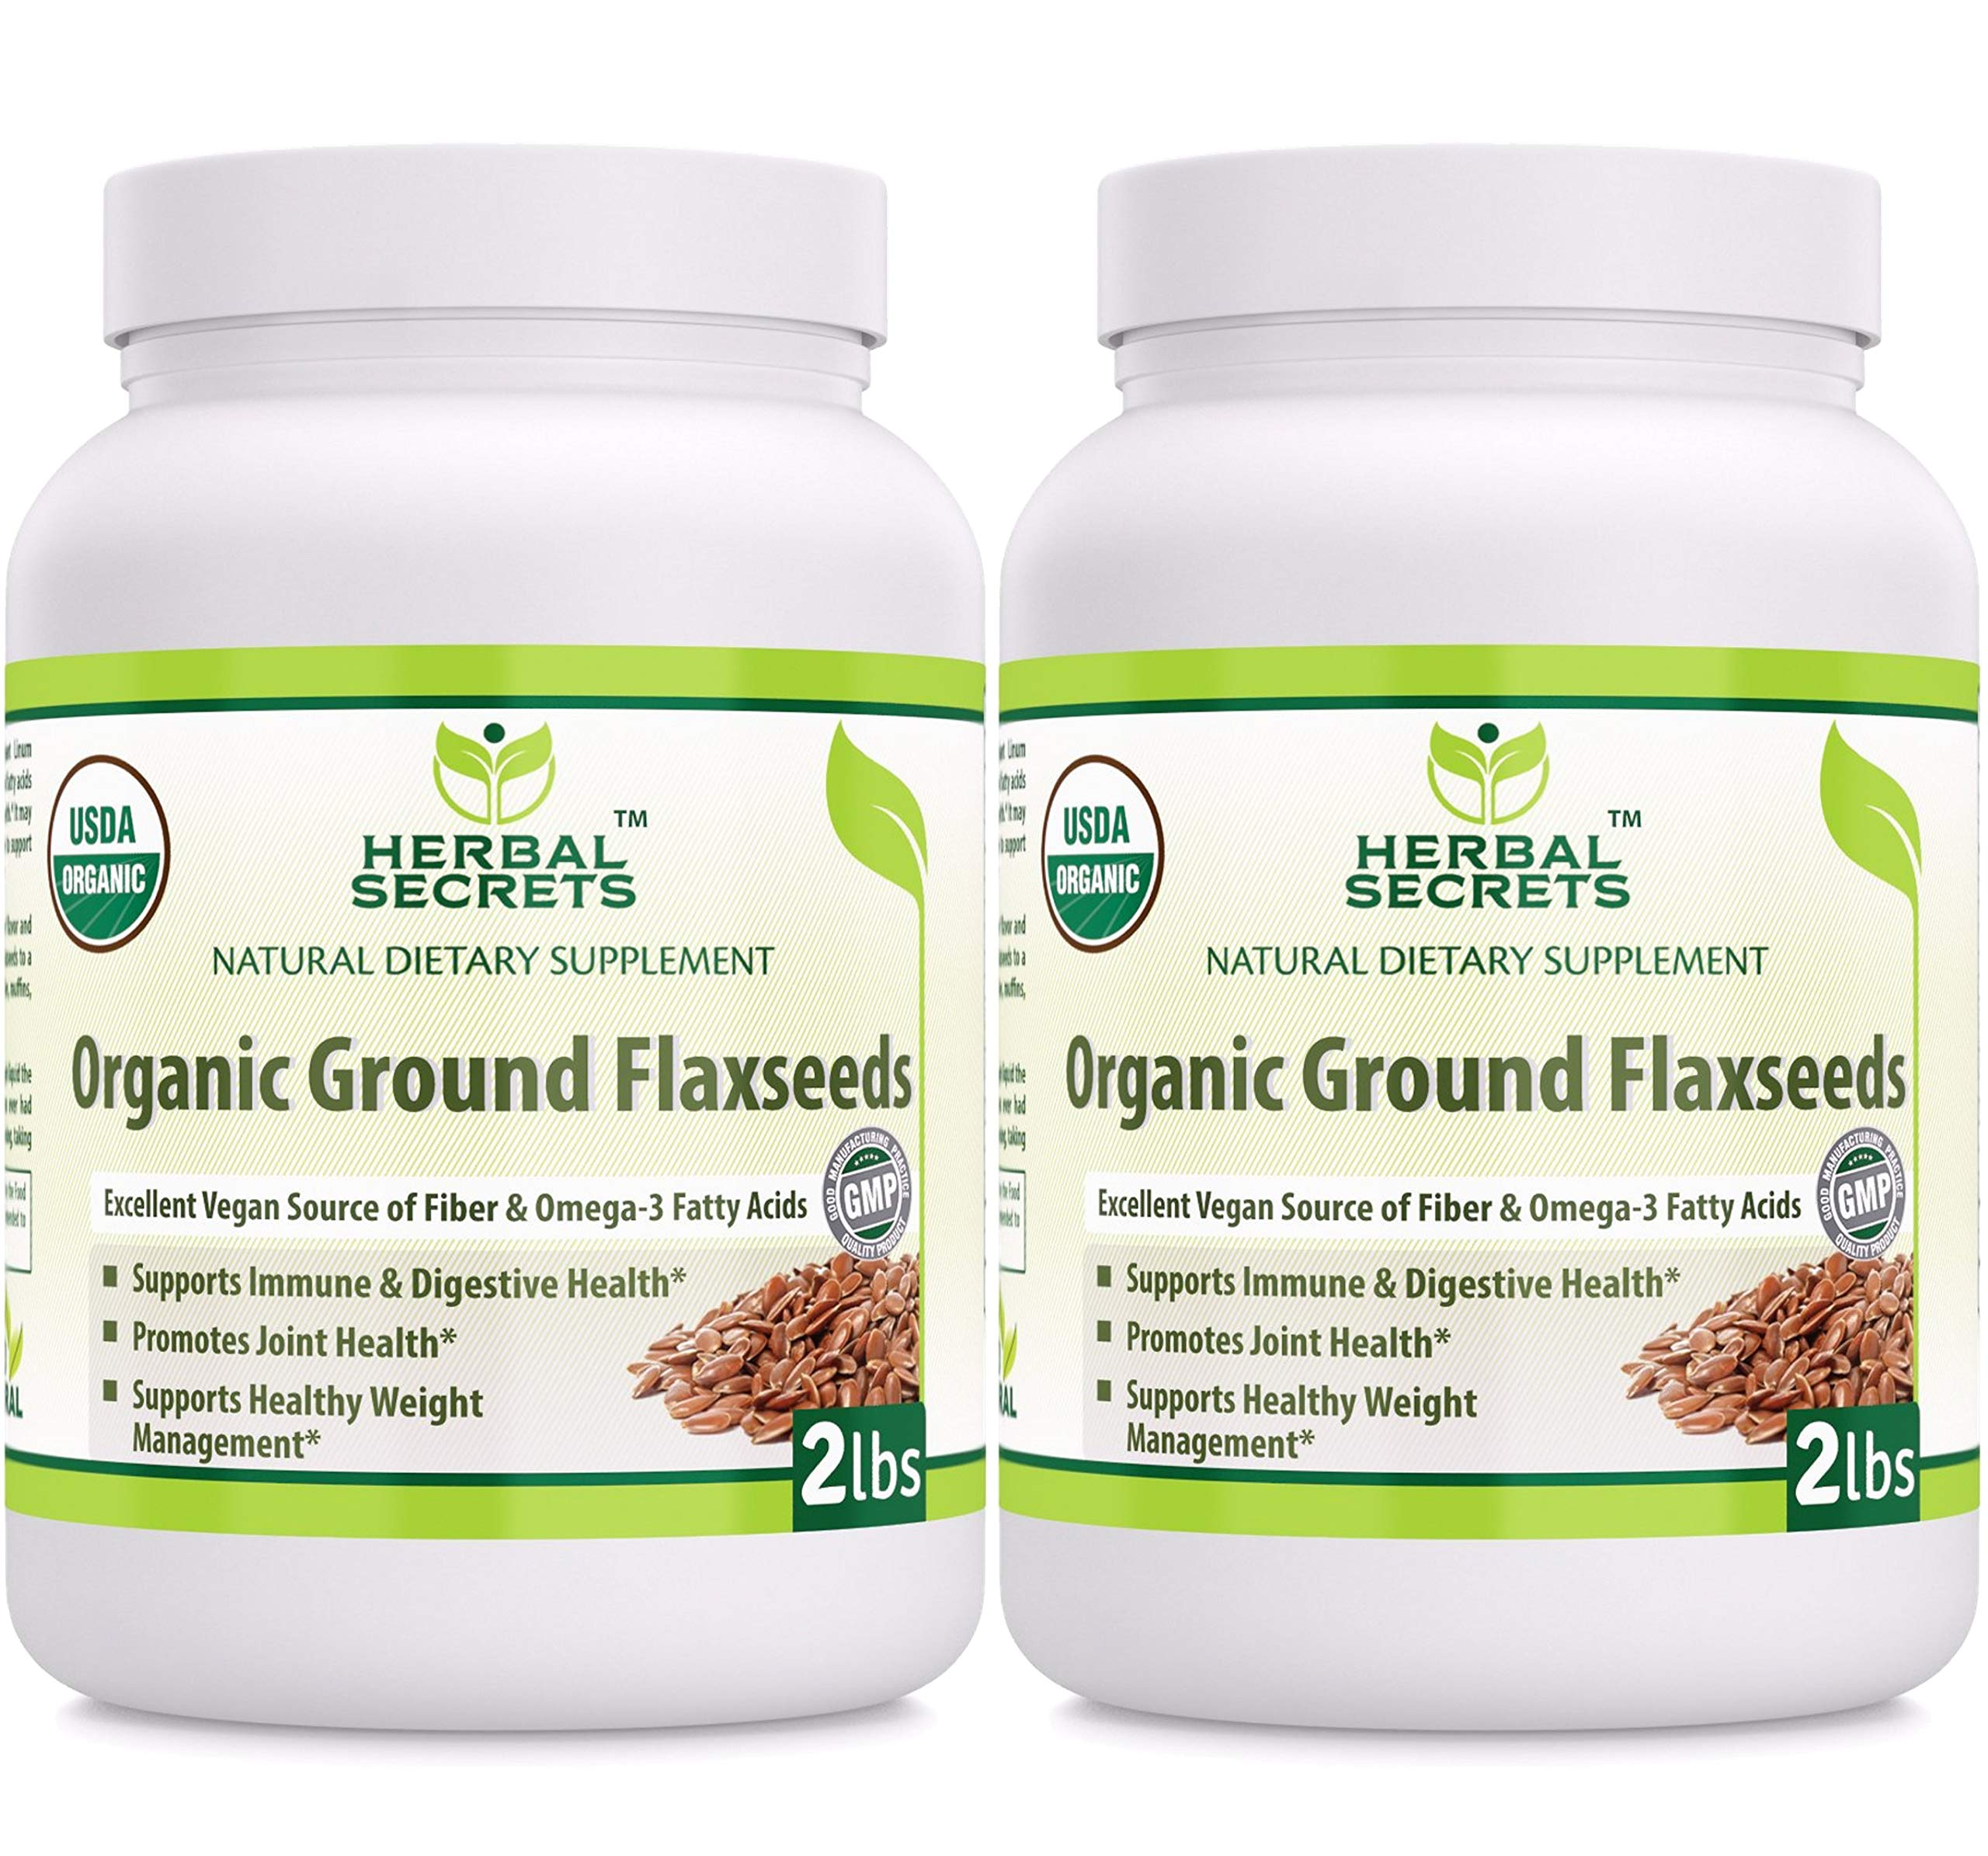 Herbal Secrets Organic Ground Flaxseed 4 Lbs Excellent Vegan Source of Fiber & Omega - Fatty Acids USDA Certified Organic- Promotes Joint Health Supports Healthy Weight Management